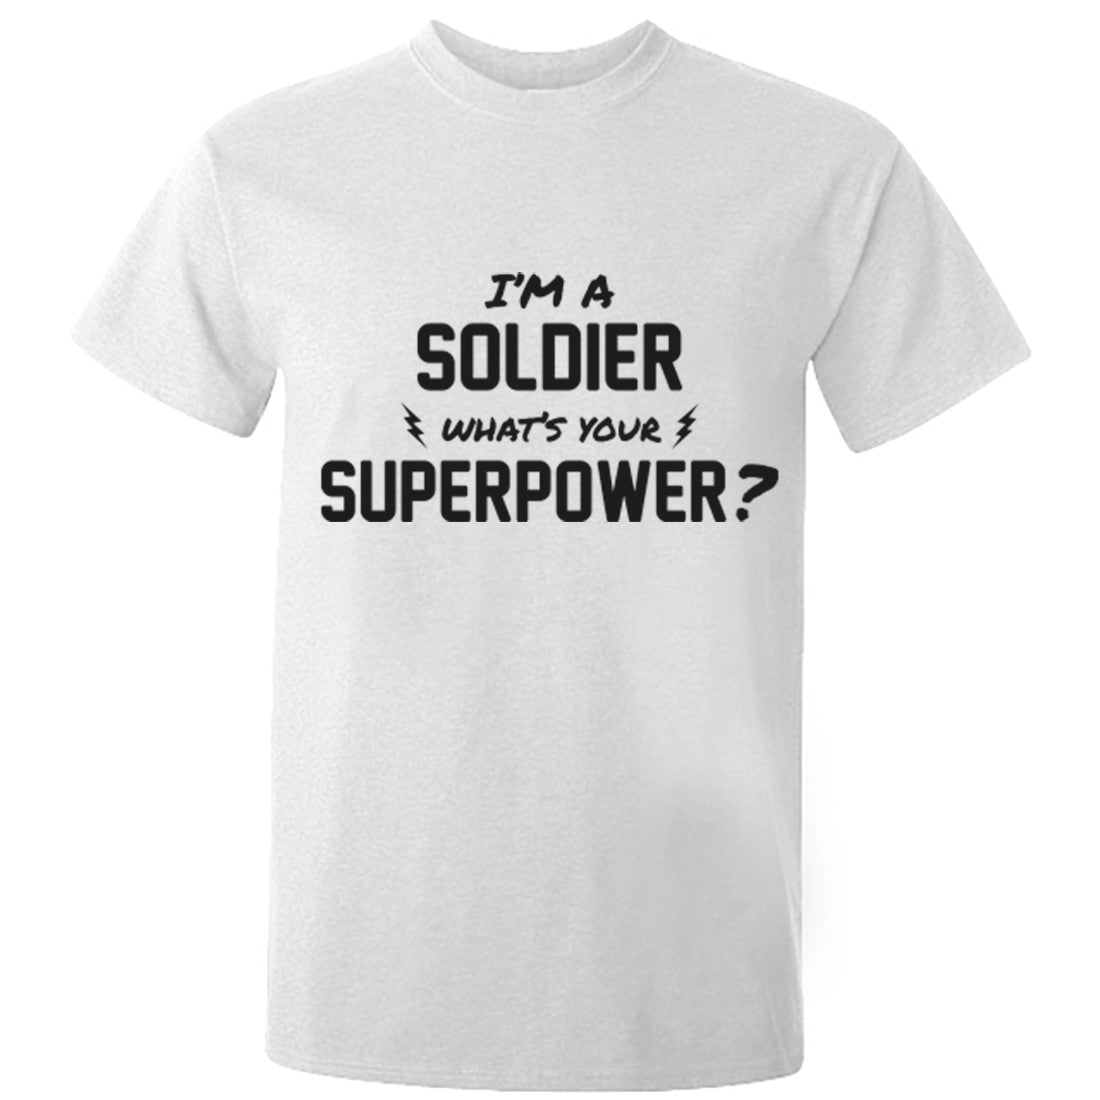 I'm A Soldier What's Your Superpower? Unisex Fit T-Shirt K0733 - Illustrated Identity Ltd.